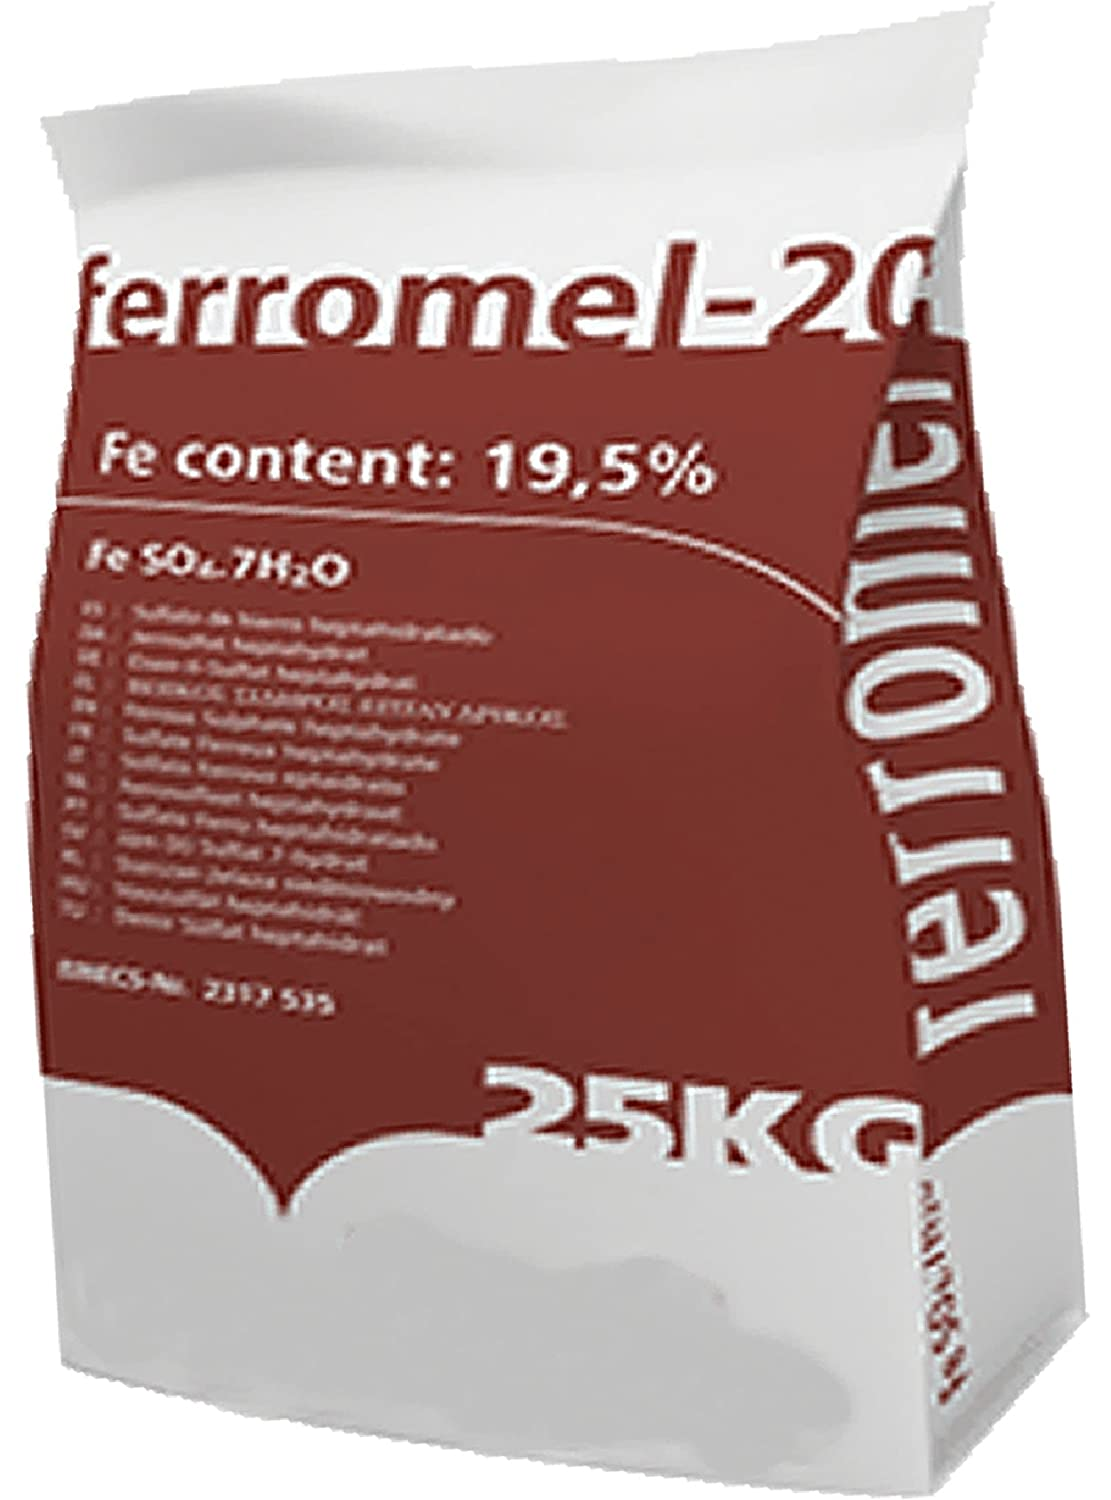 Iron Sulphate 25KG PREMIUM Lawn Conditioner & Lawn Feed - Ferrous Sulphate / Sulphate of Iron - EASY DISSOLVE, EASY SPRAY, EASY SPREAD Ferromel